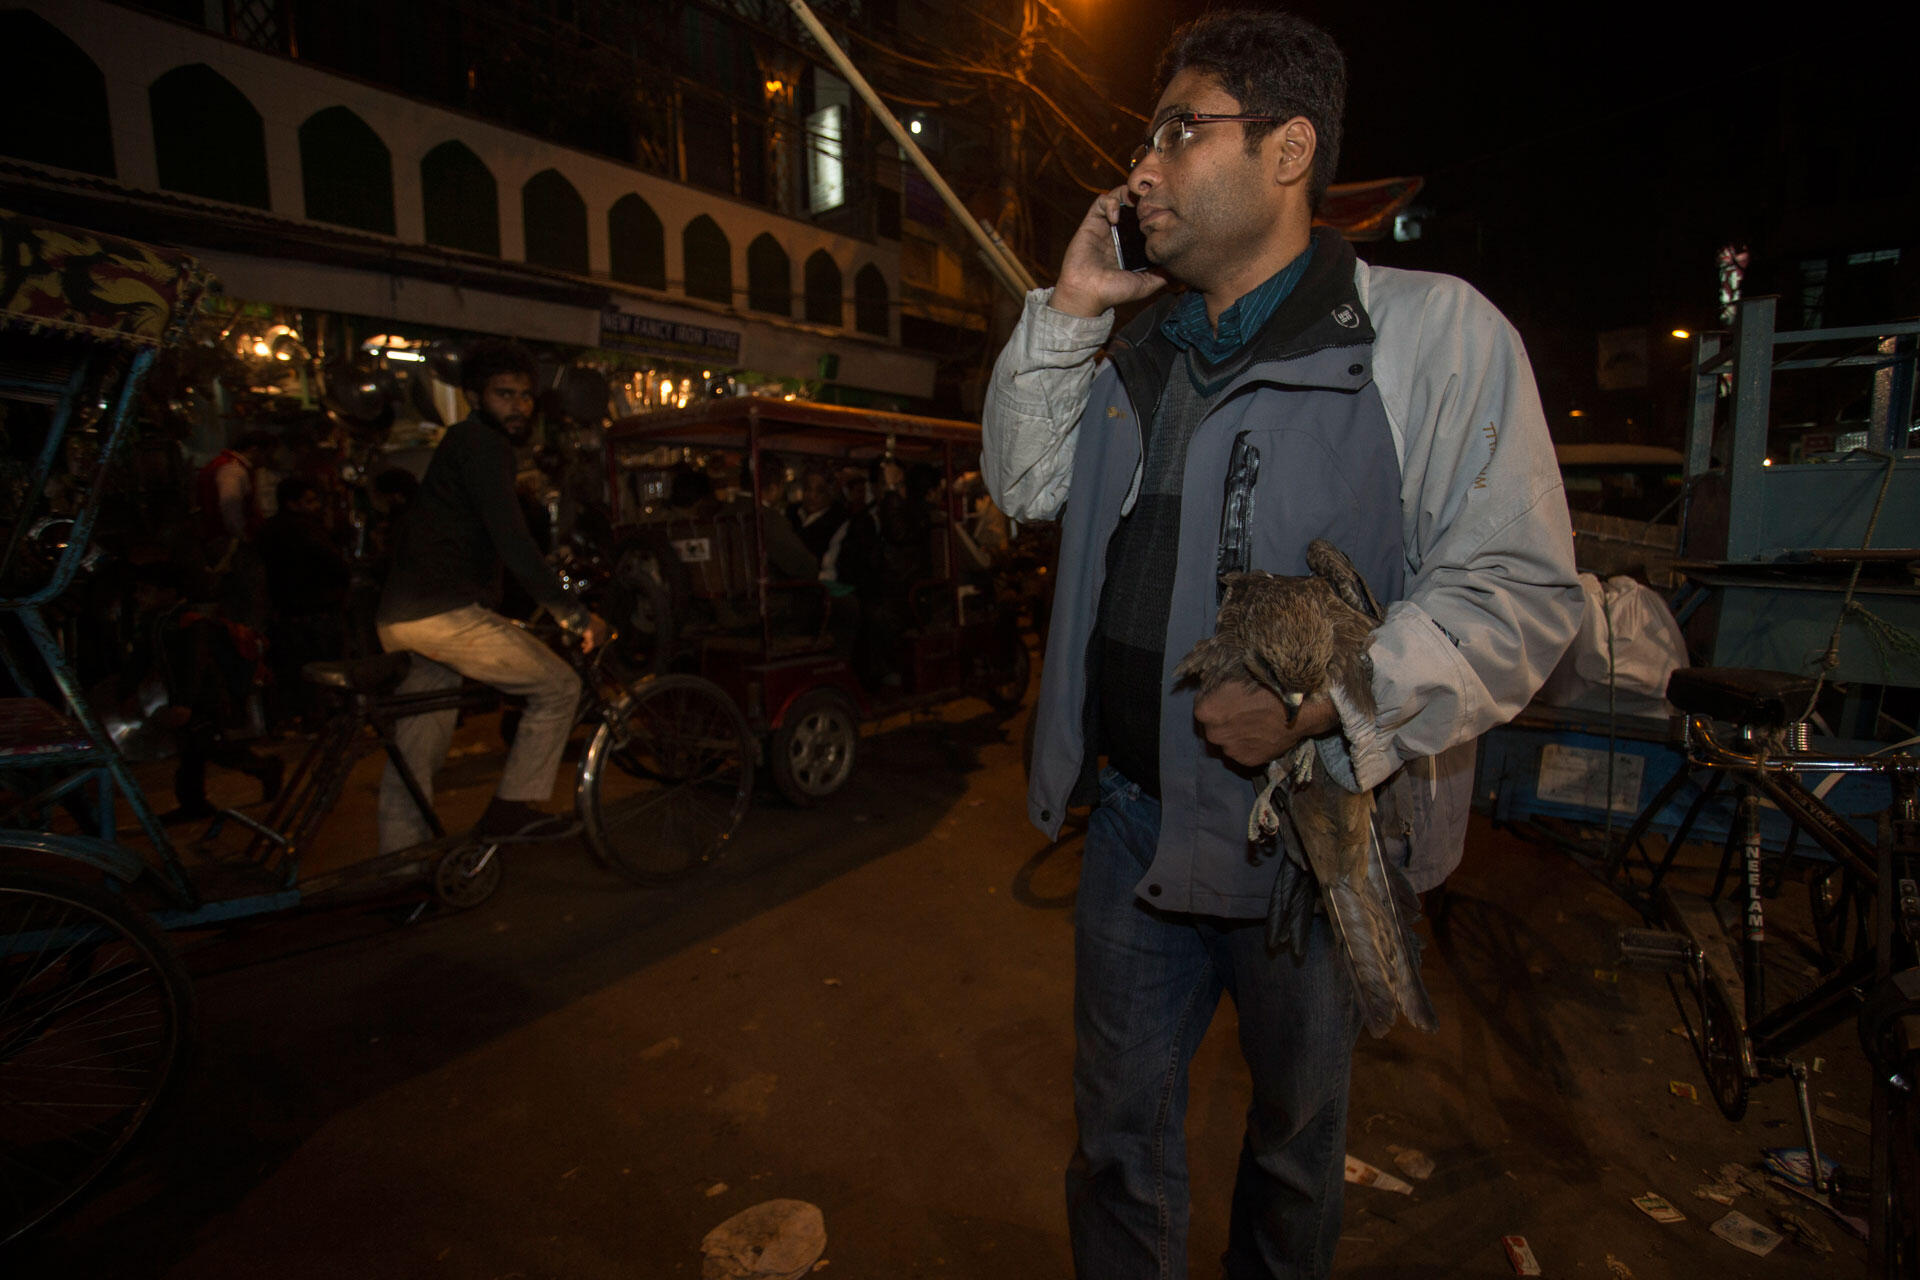 Nadeem Sherzhad carries a rescued bird back to his house for treatment. Luke Massey